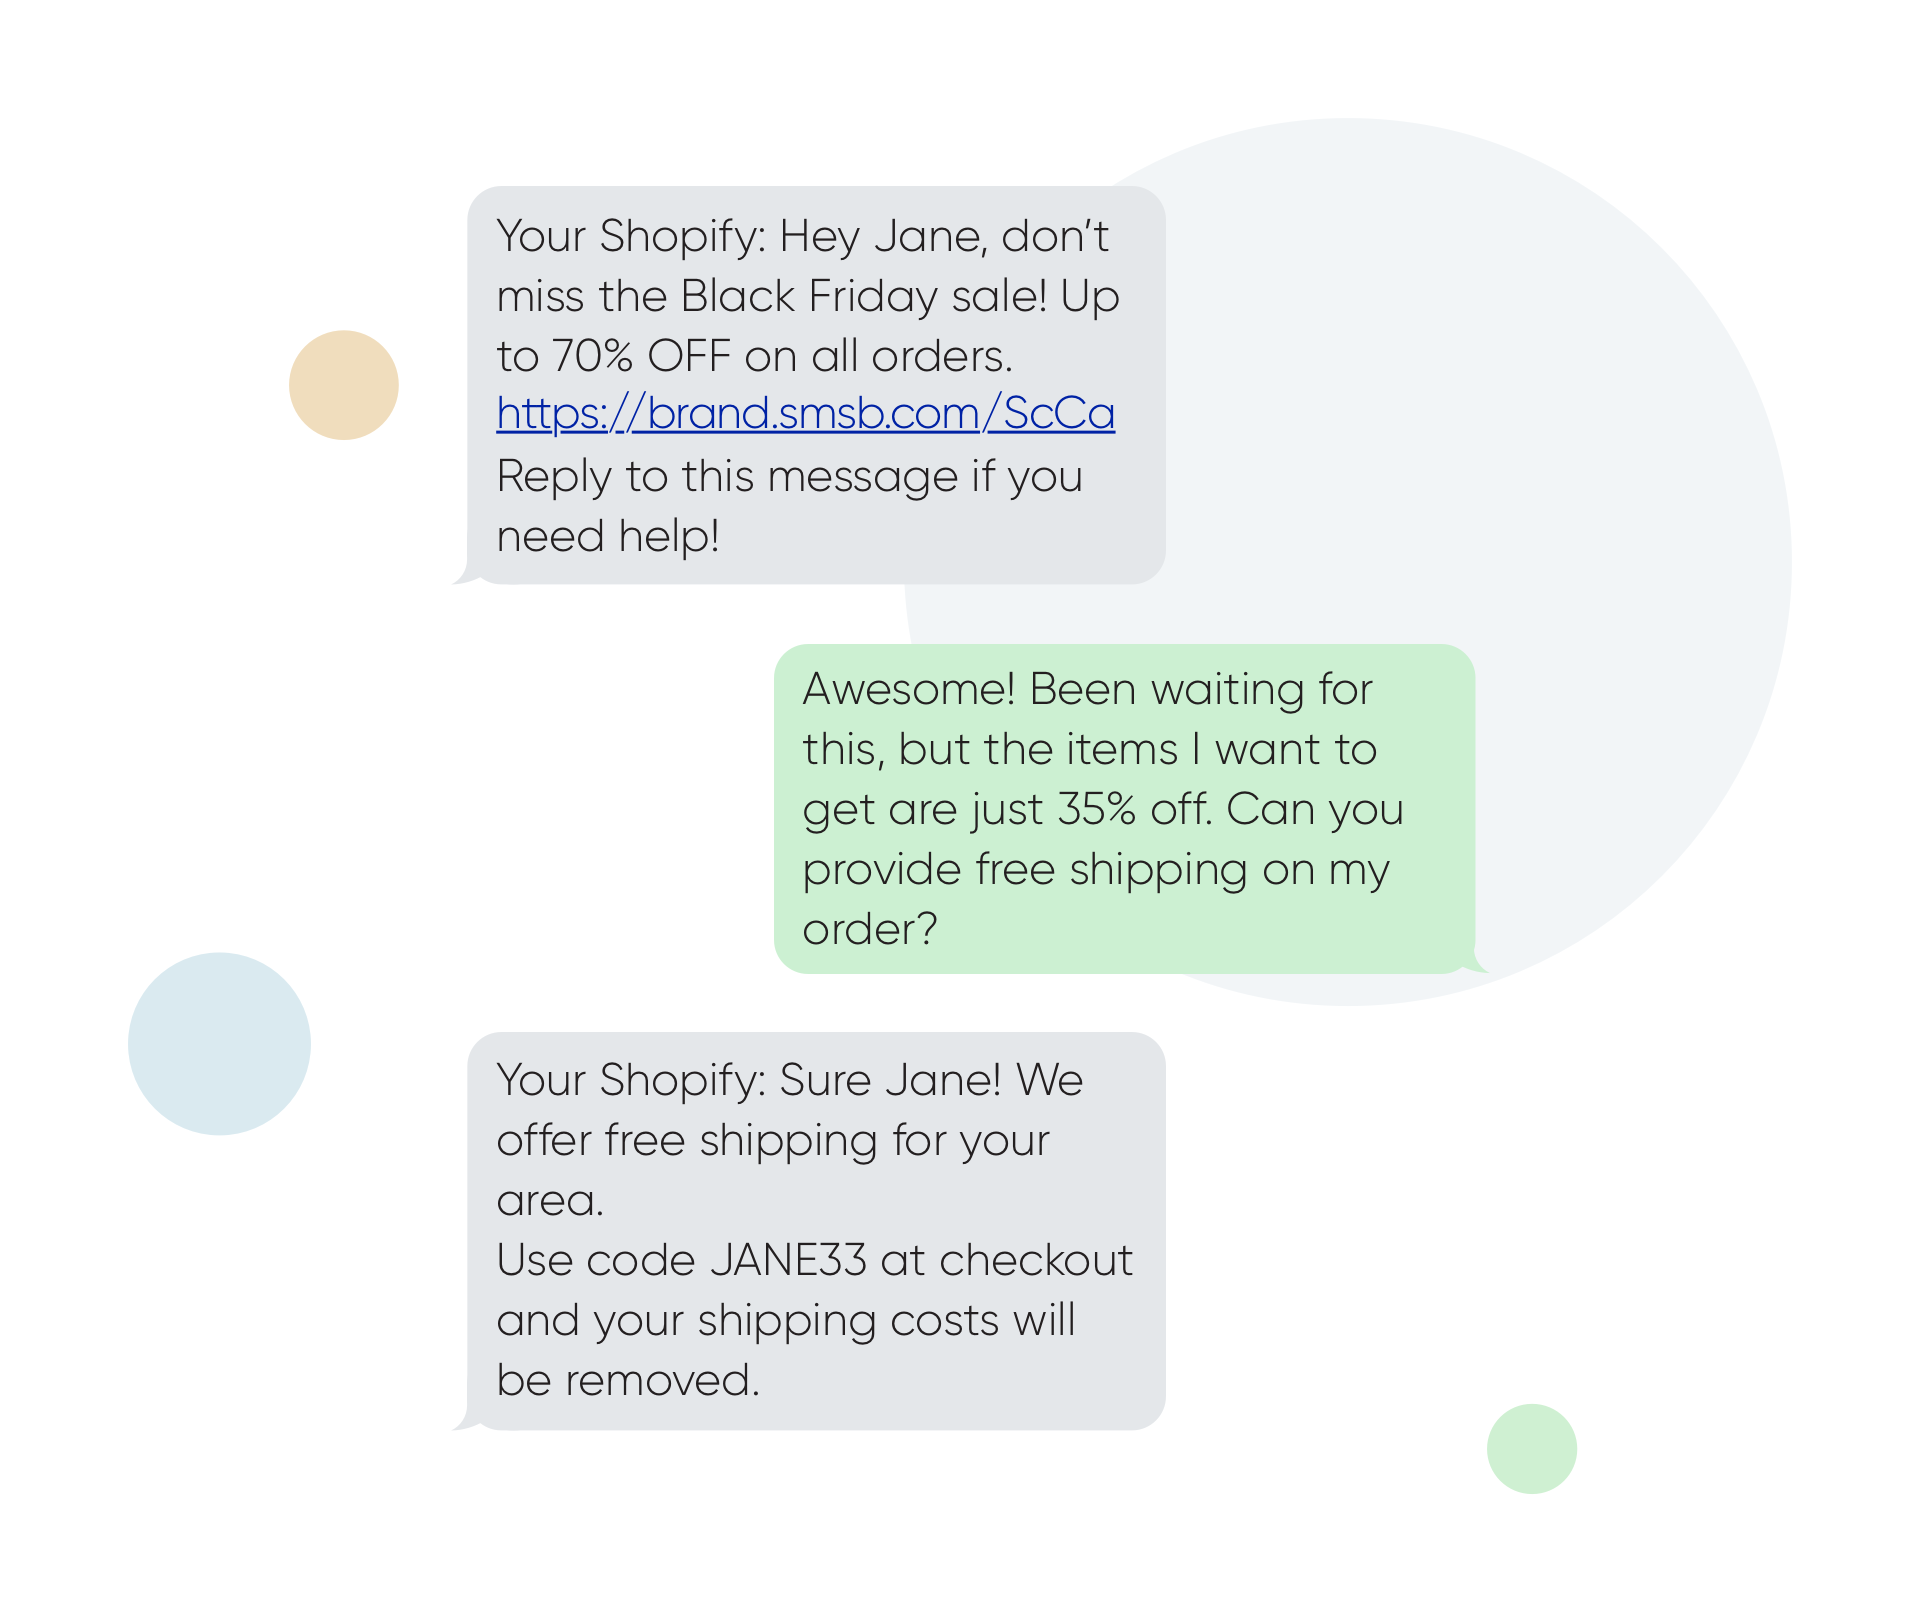 SMS Chat Conversation using customer data in Shopify